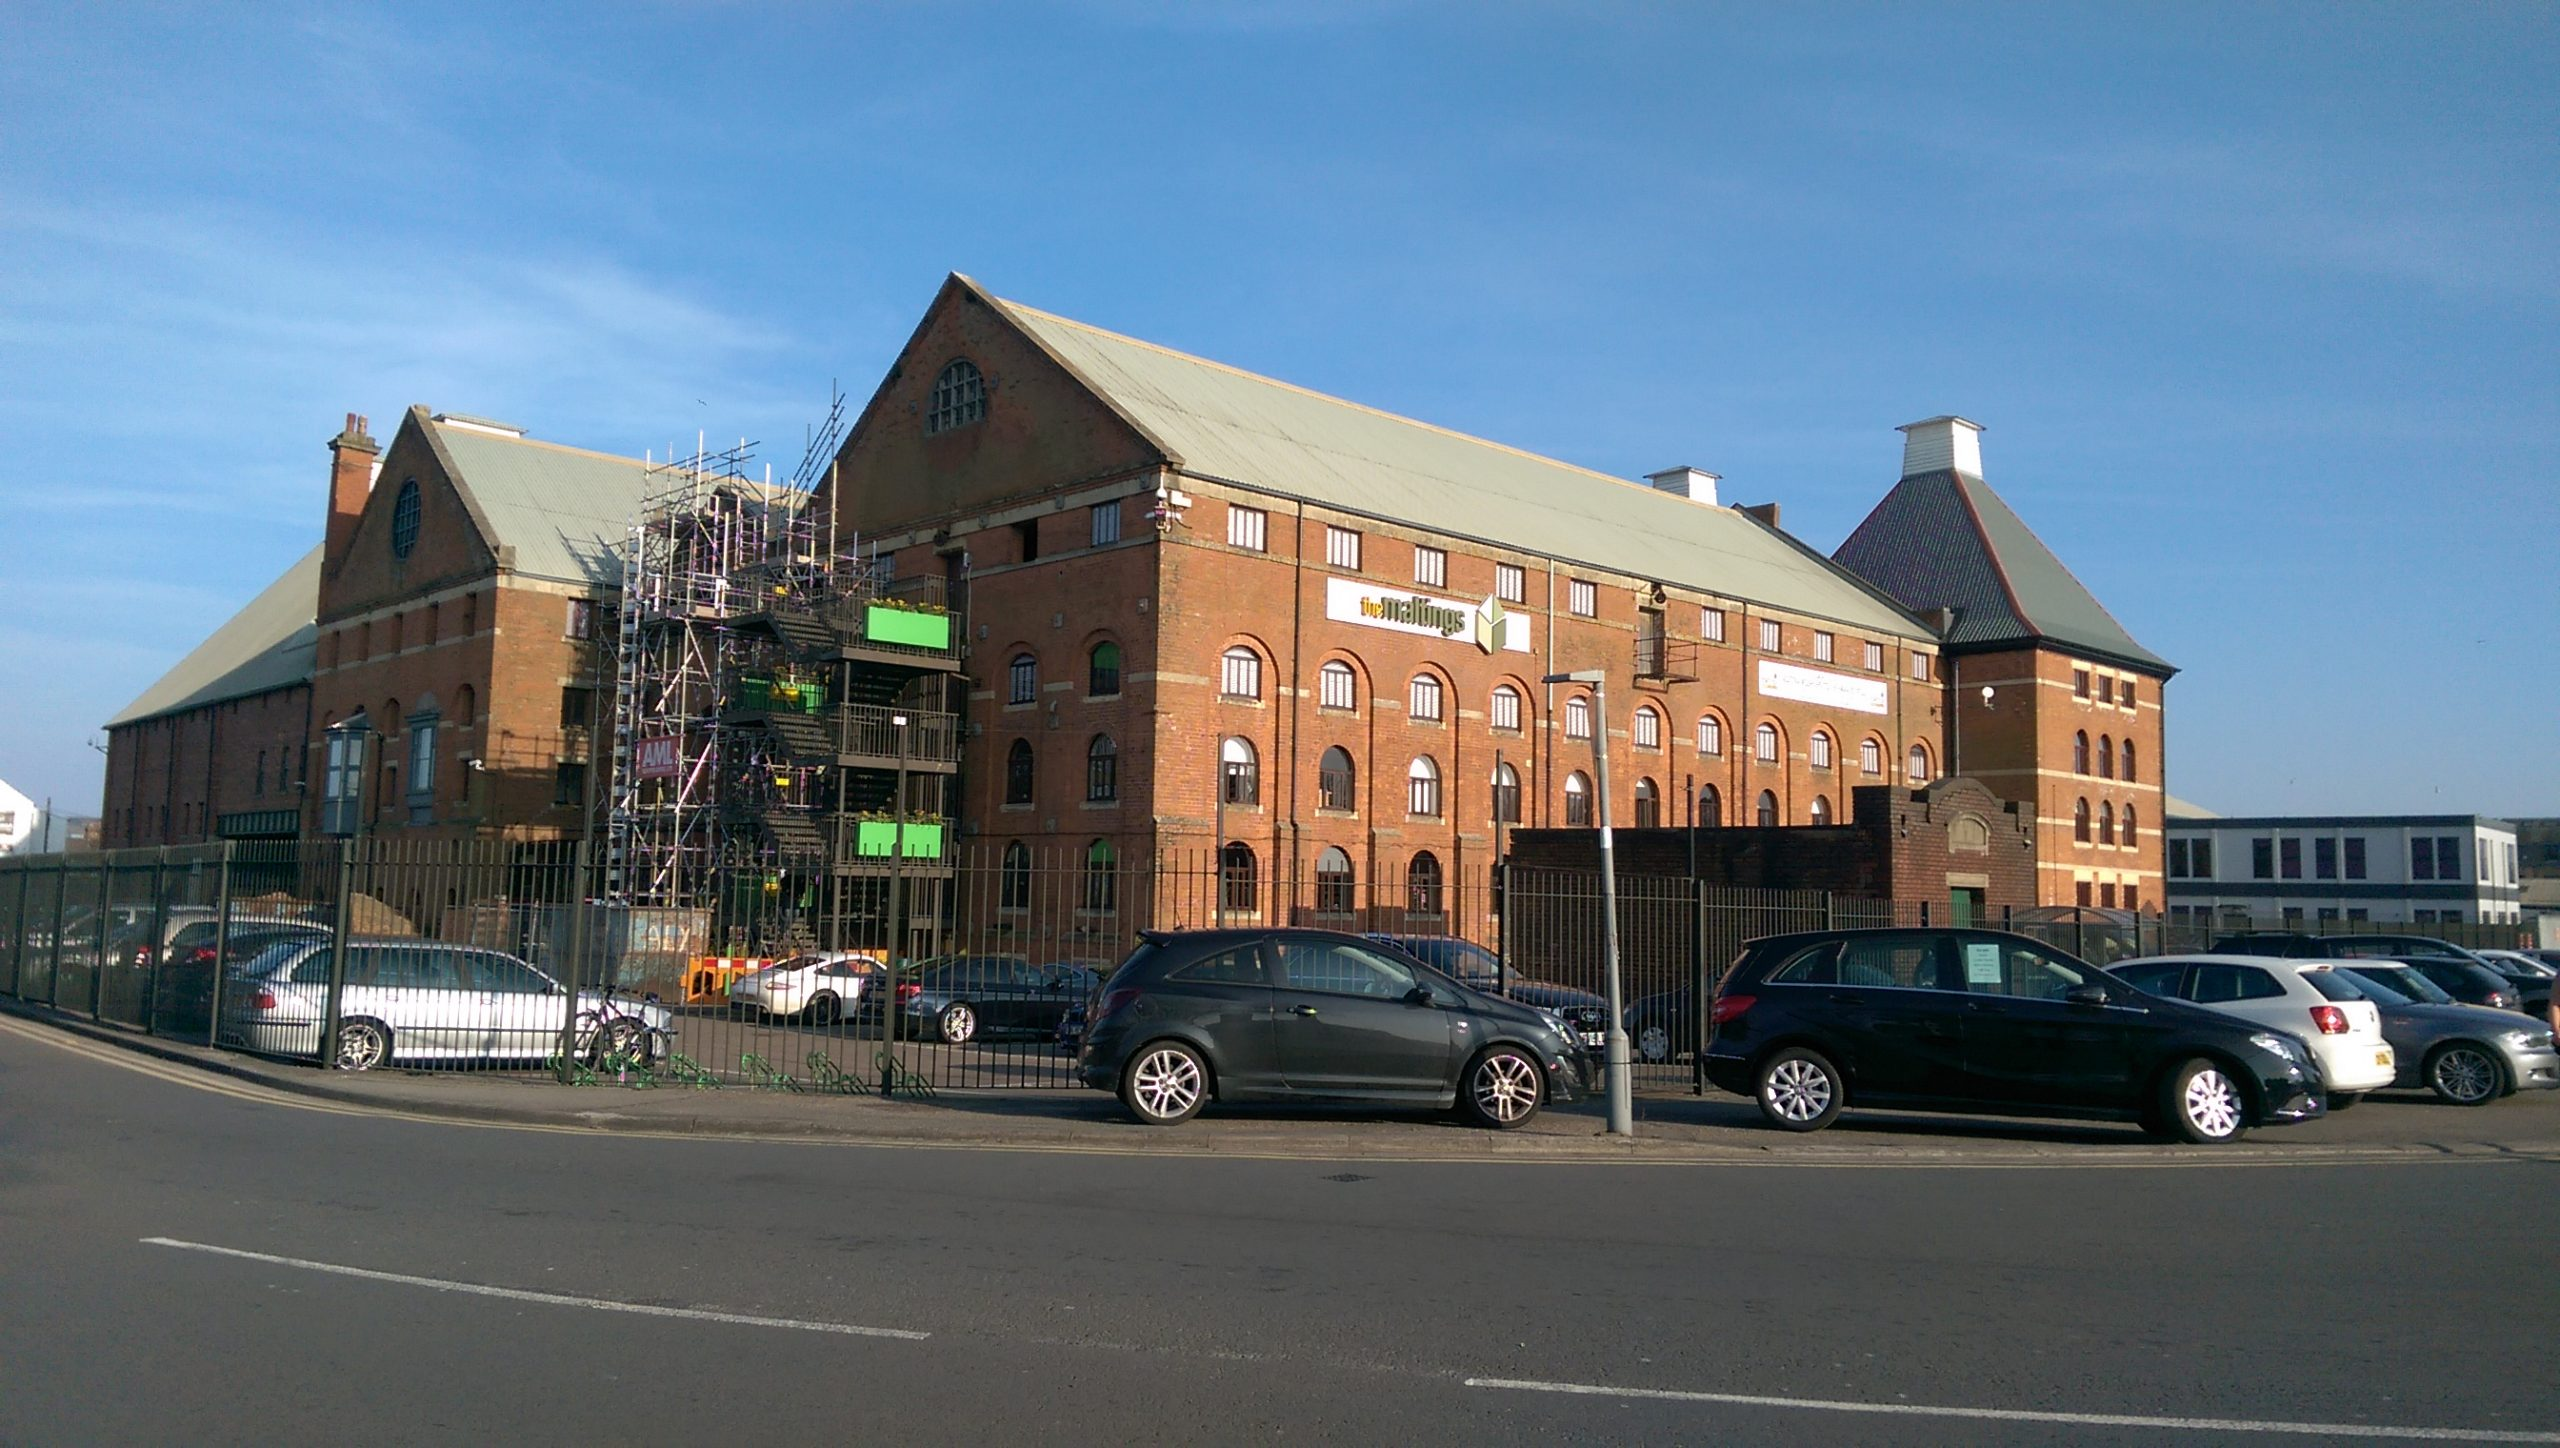 The Maltings - present day